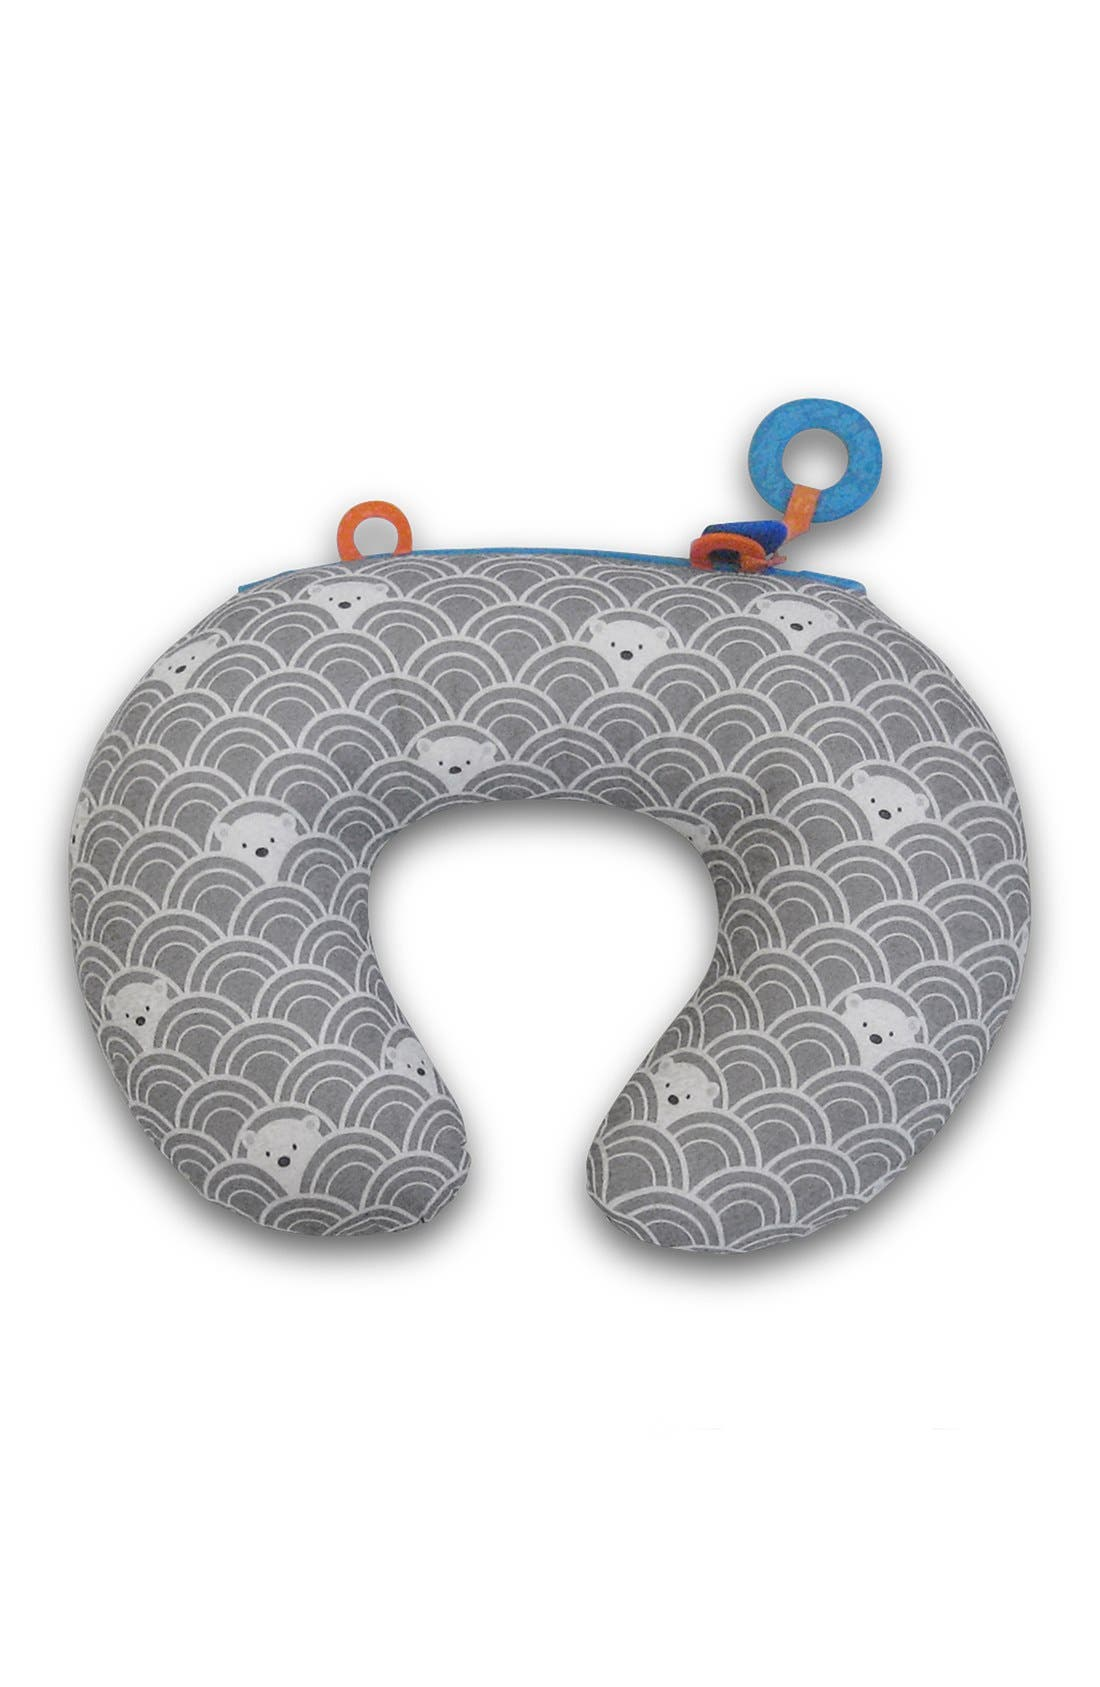 'Tummy Time - SlideLine Collection' Mini Pillow, Book & Teething Ring,                         Main,                         color, Grey